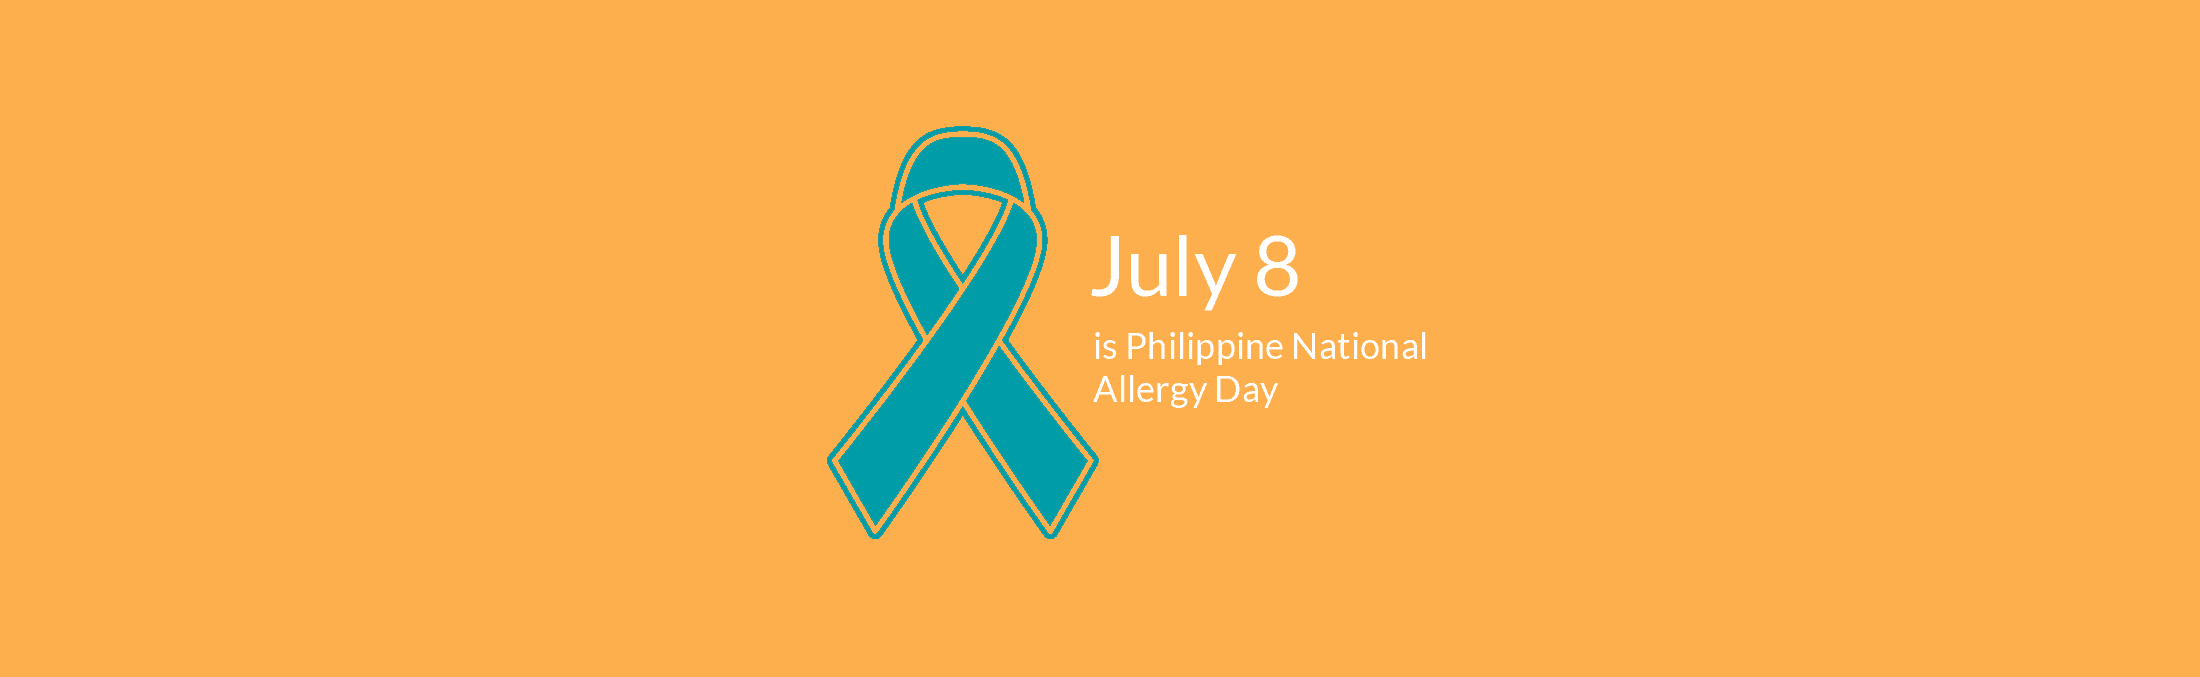 Philippines National Allergy Day